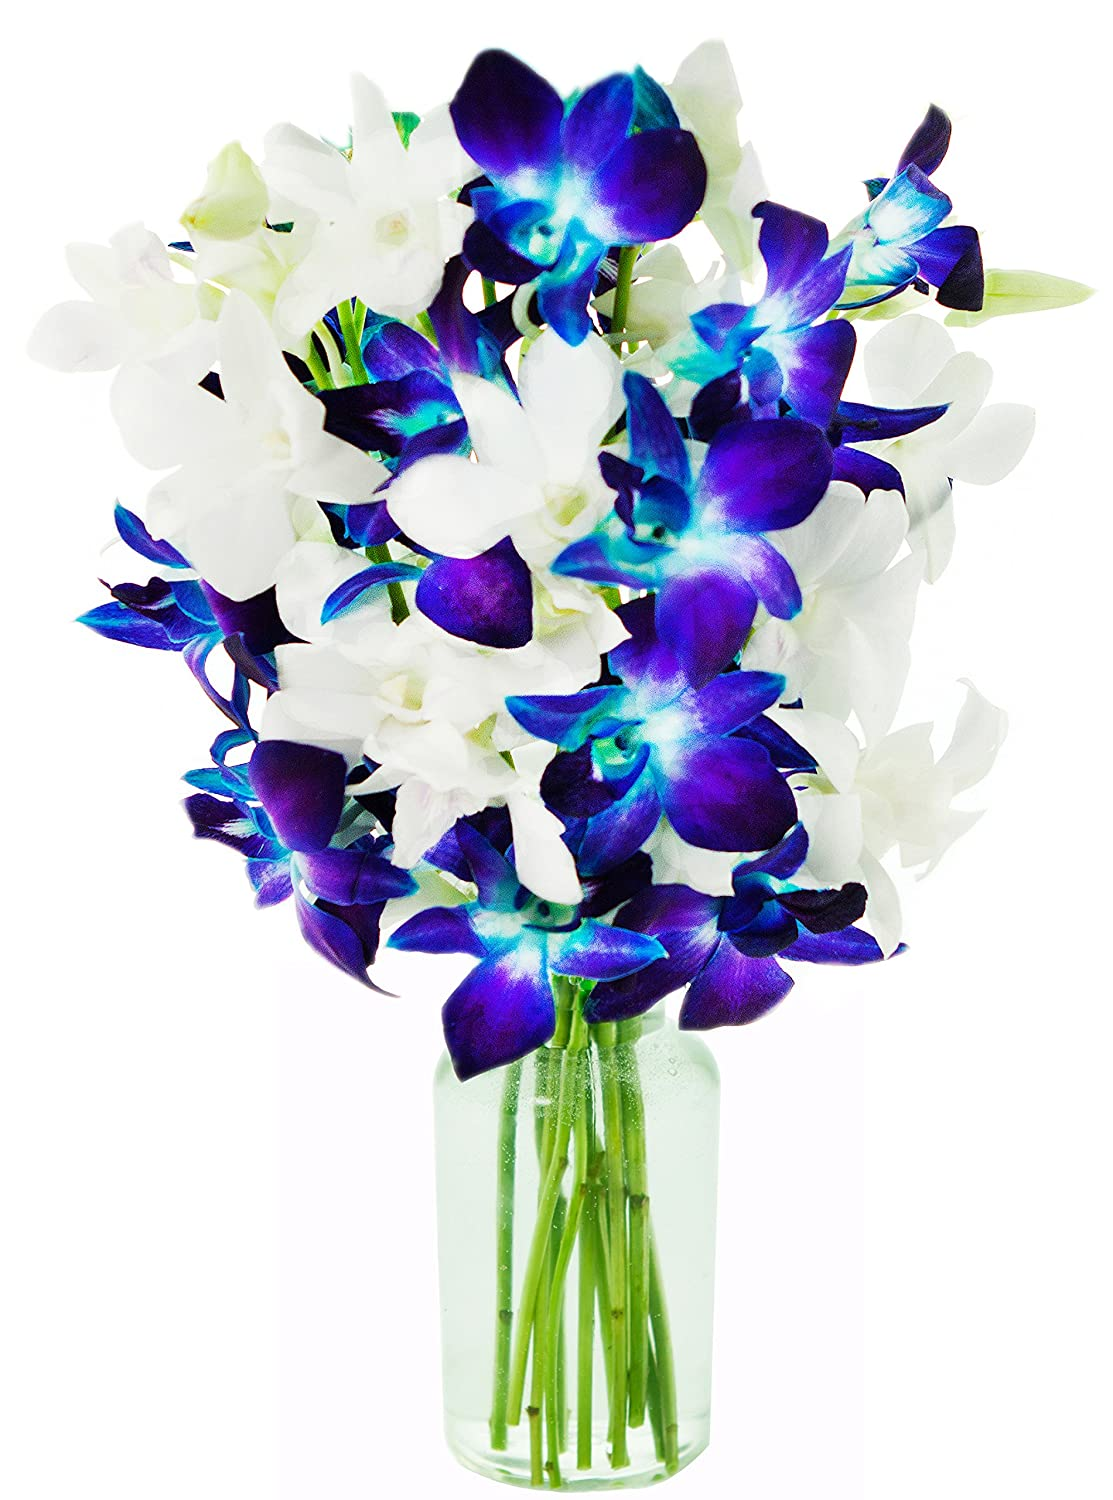 Kabloom 10 Stems Sapphire Diamond Blue and White Dendrobium Orchids with Vase, 2.5 Pound